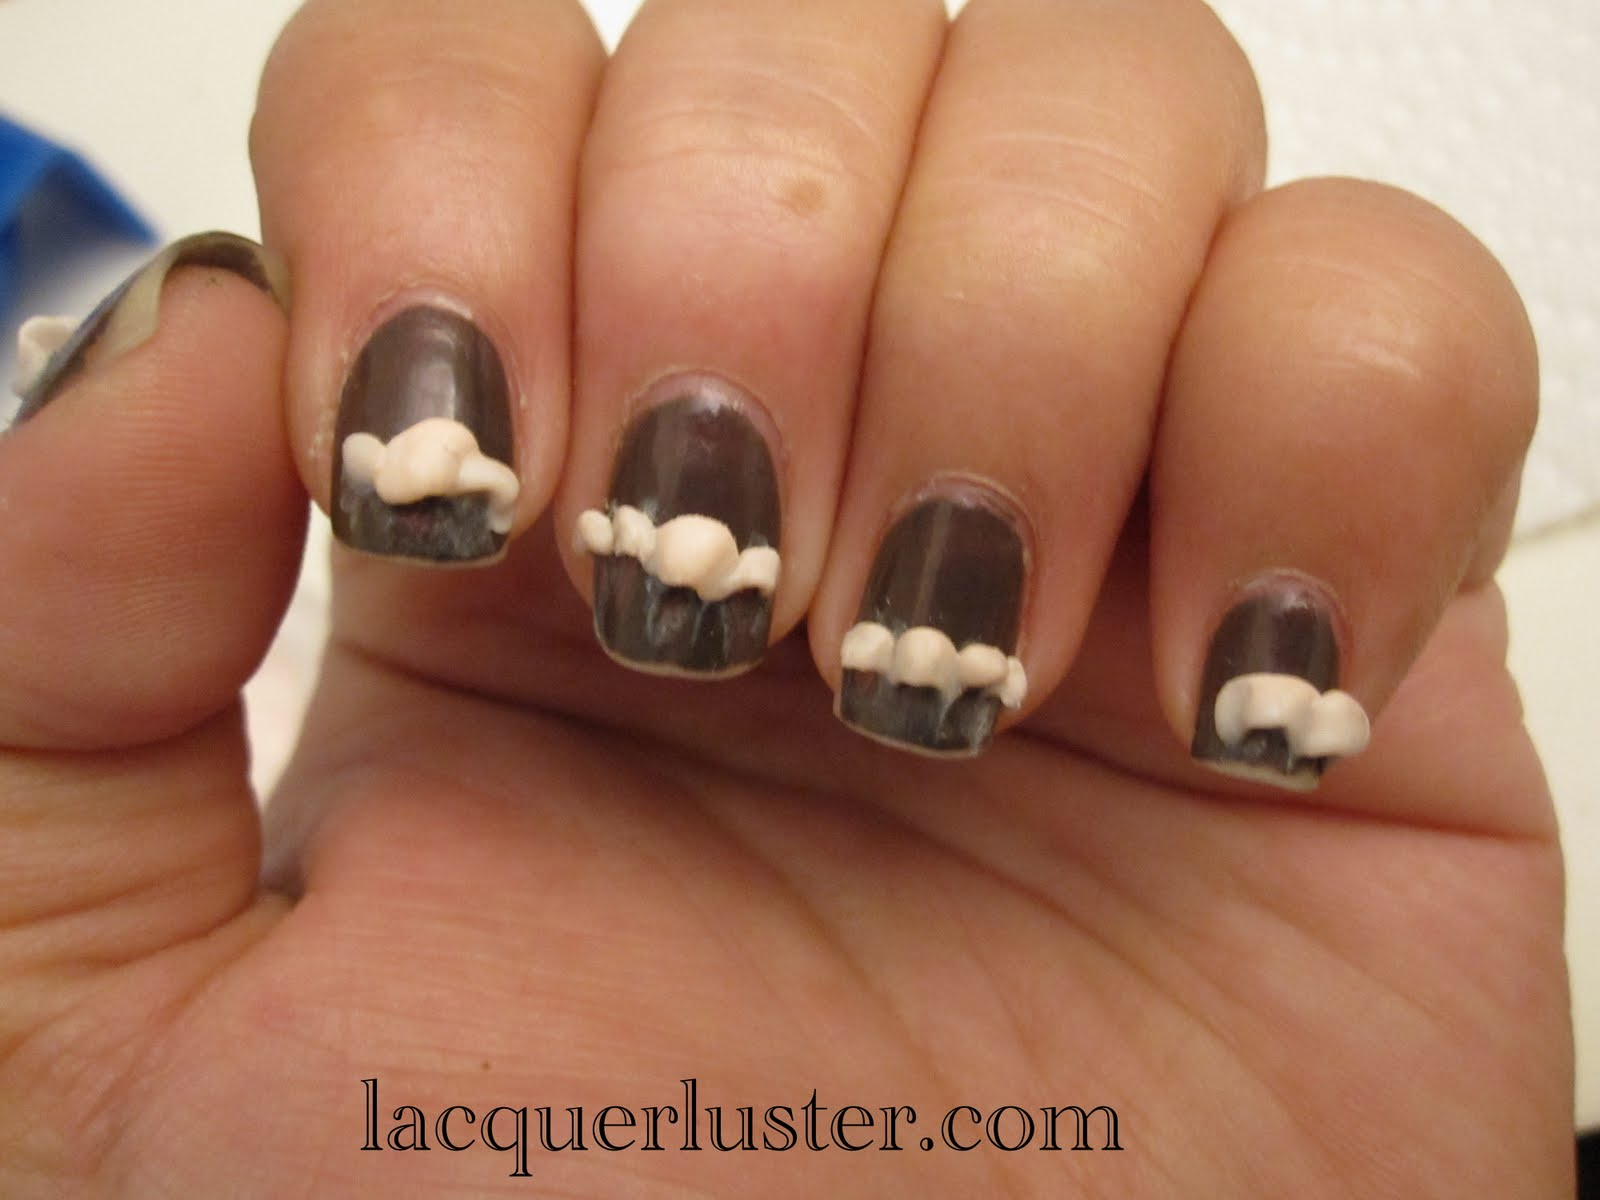 Lacquerluster: Purple Tips and Lunula (with Bling and Bow!)